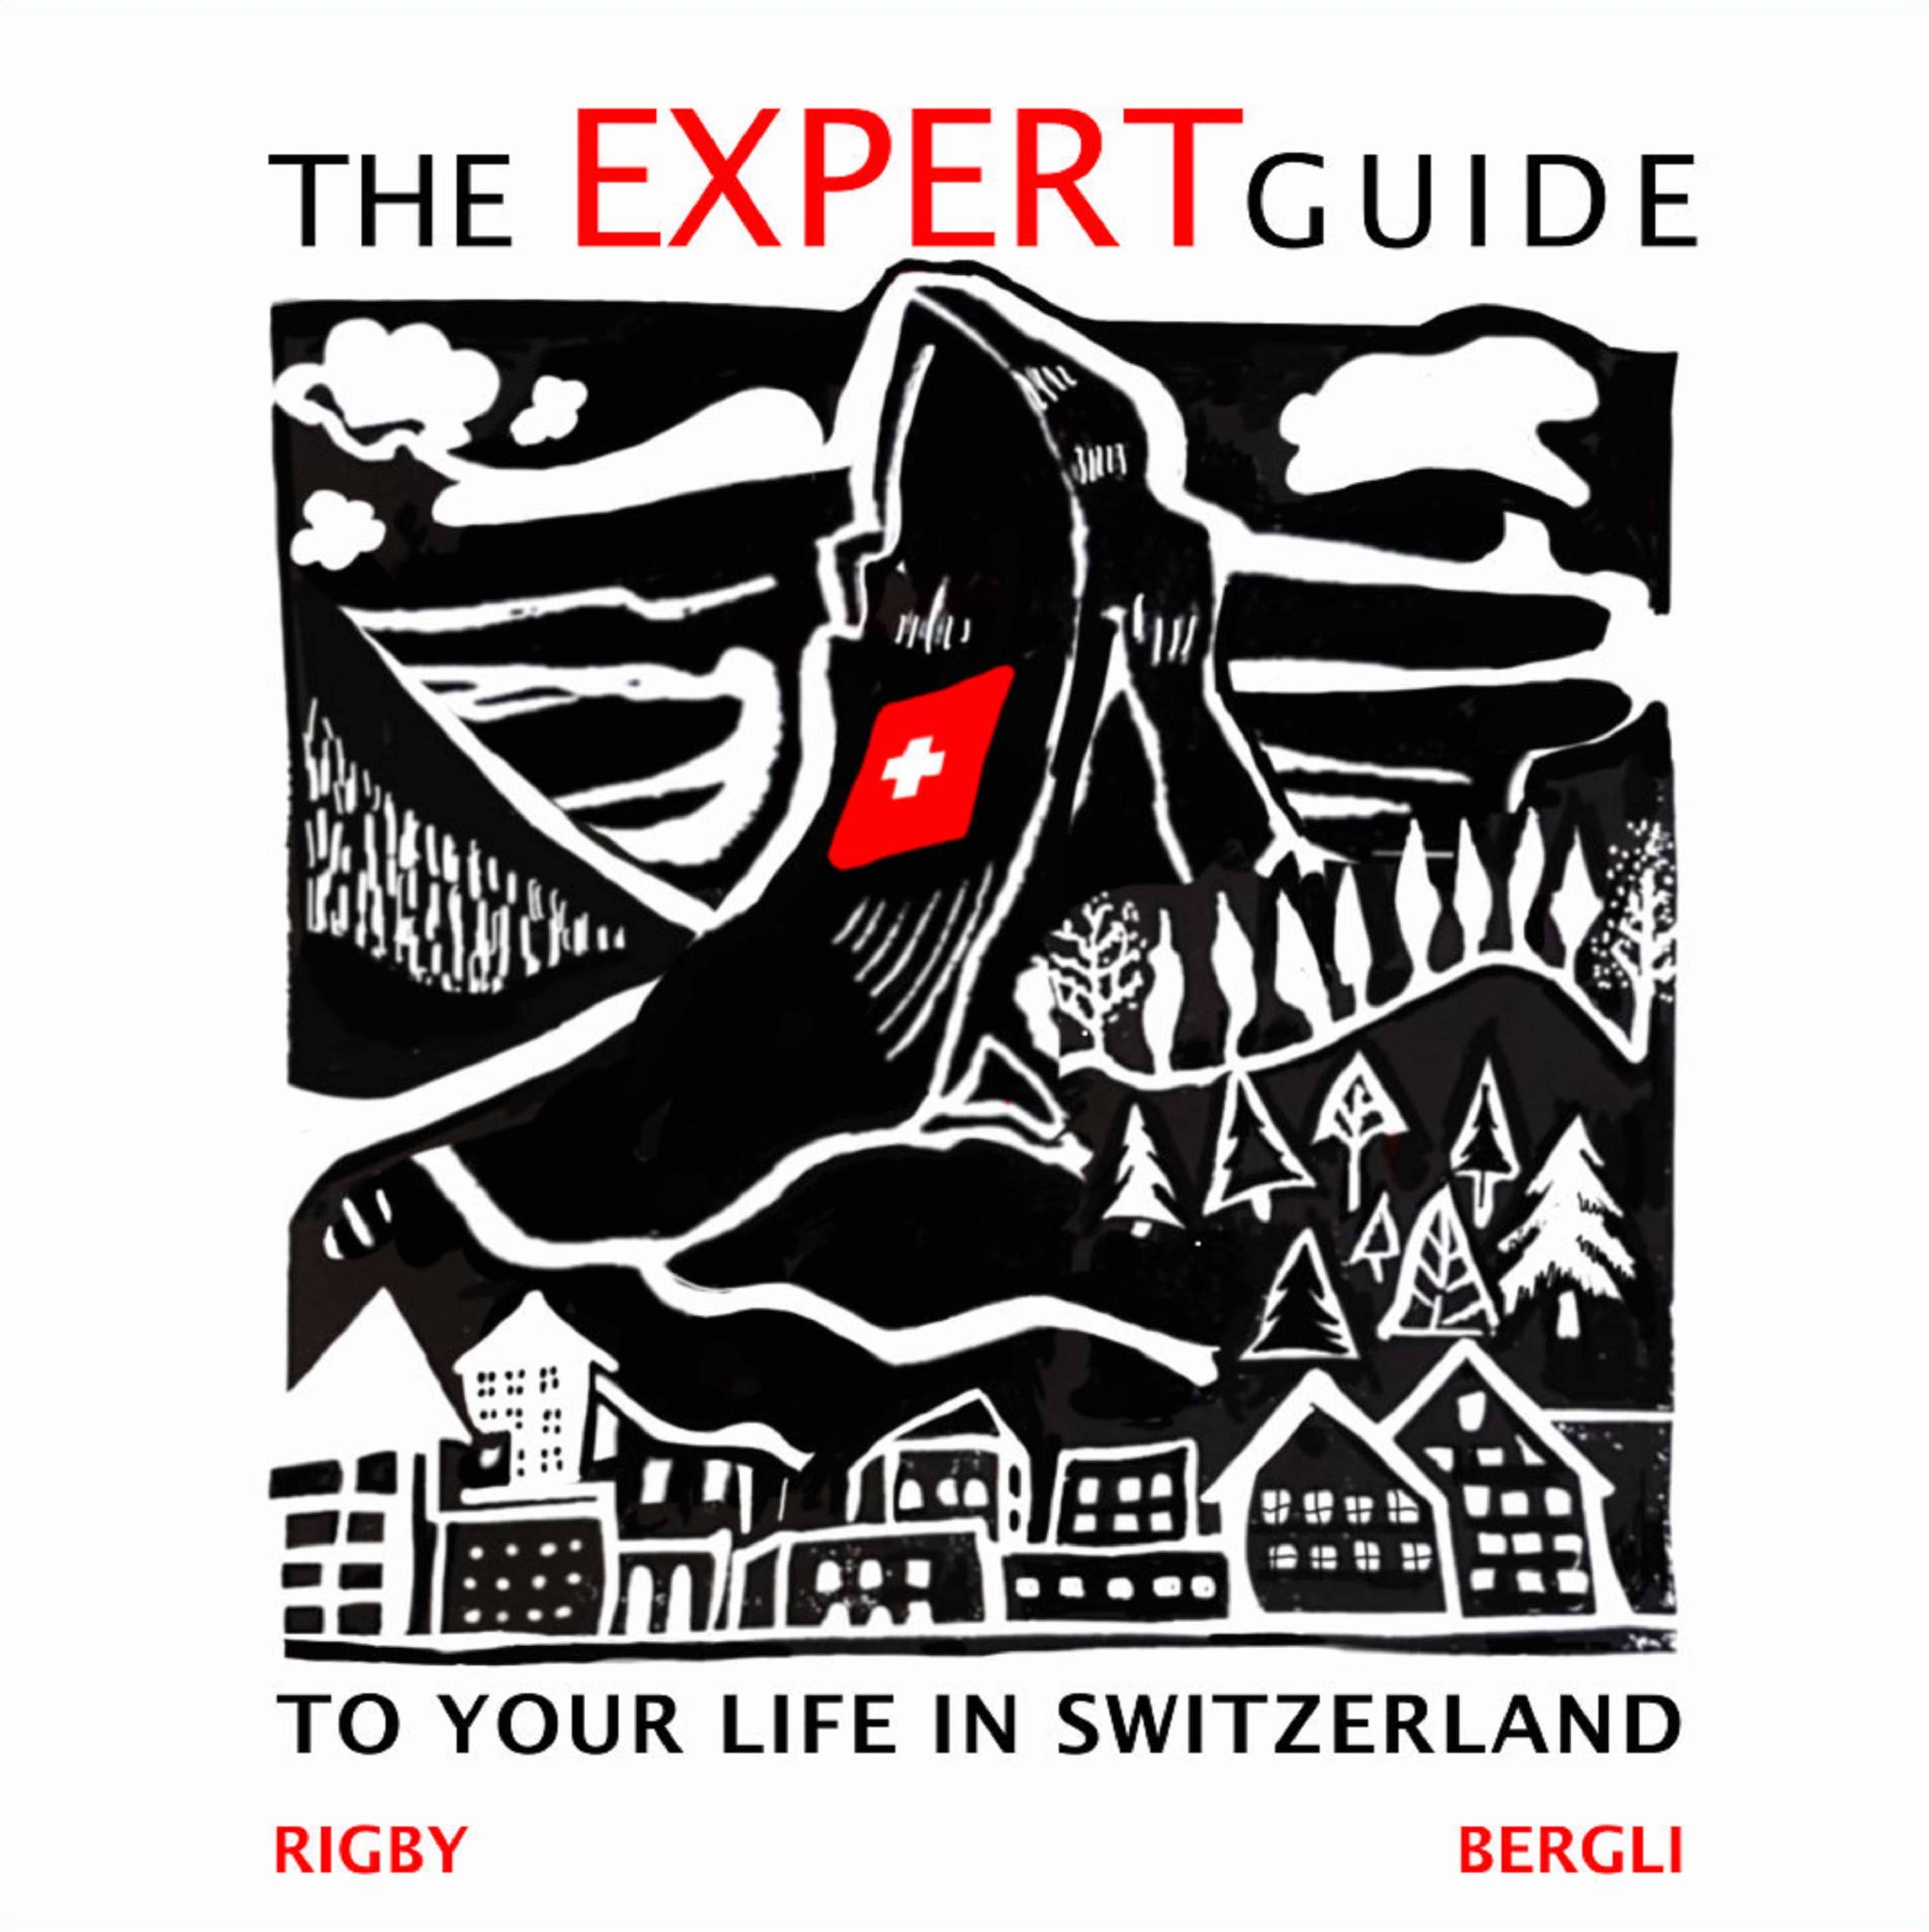 The Expert Guide to Your Life in Switzerland artwork